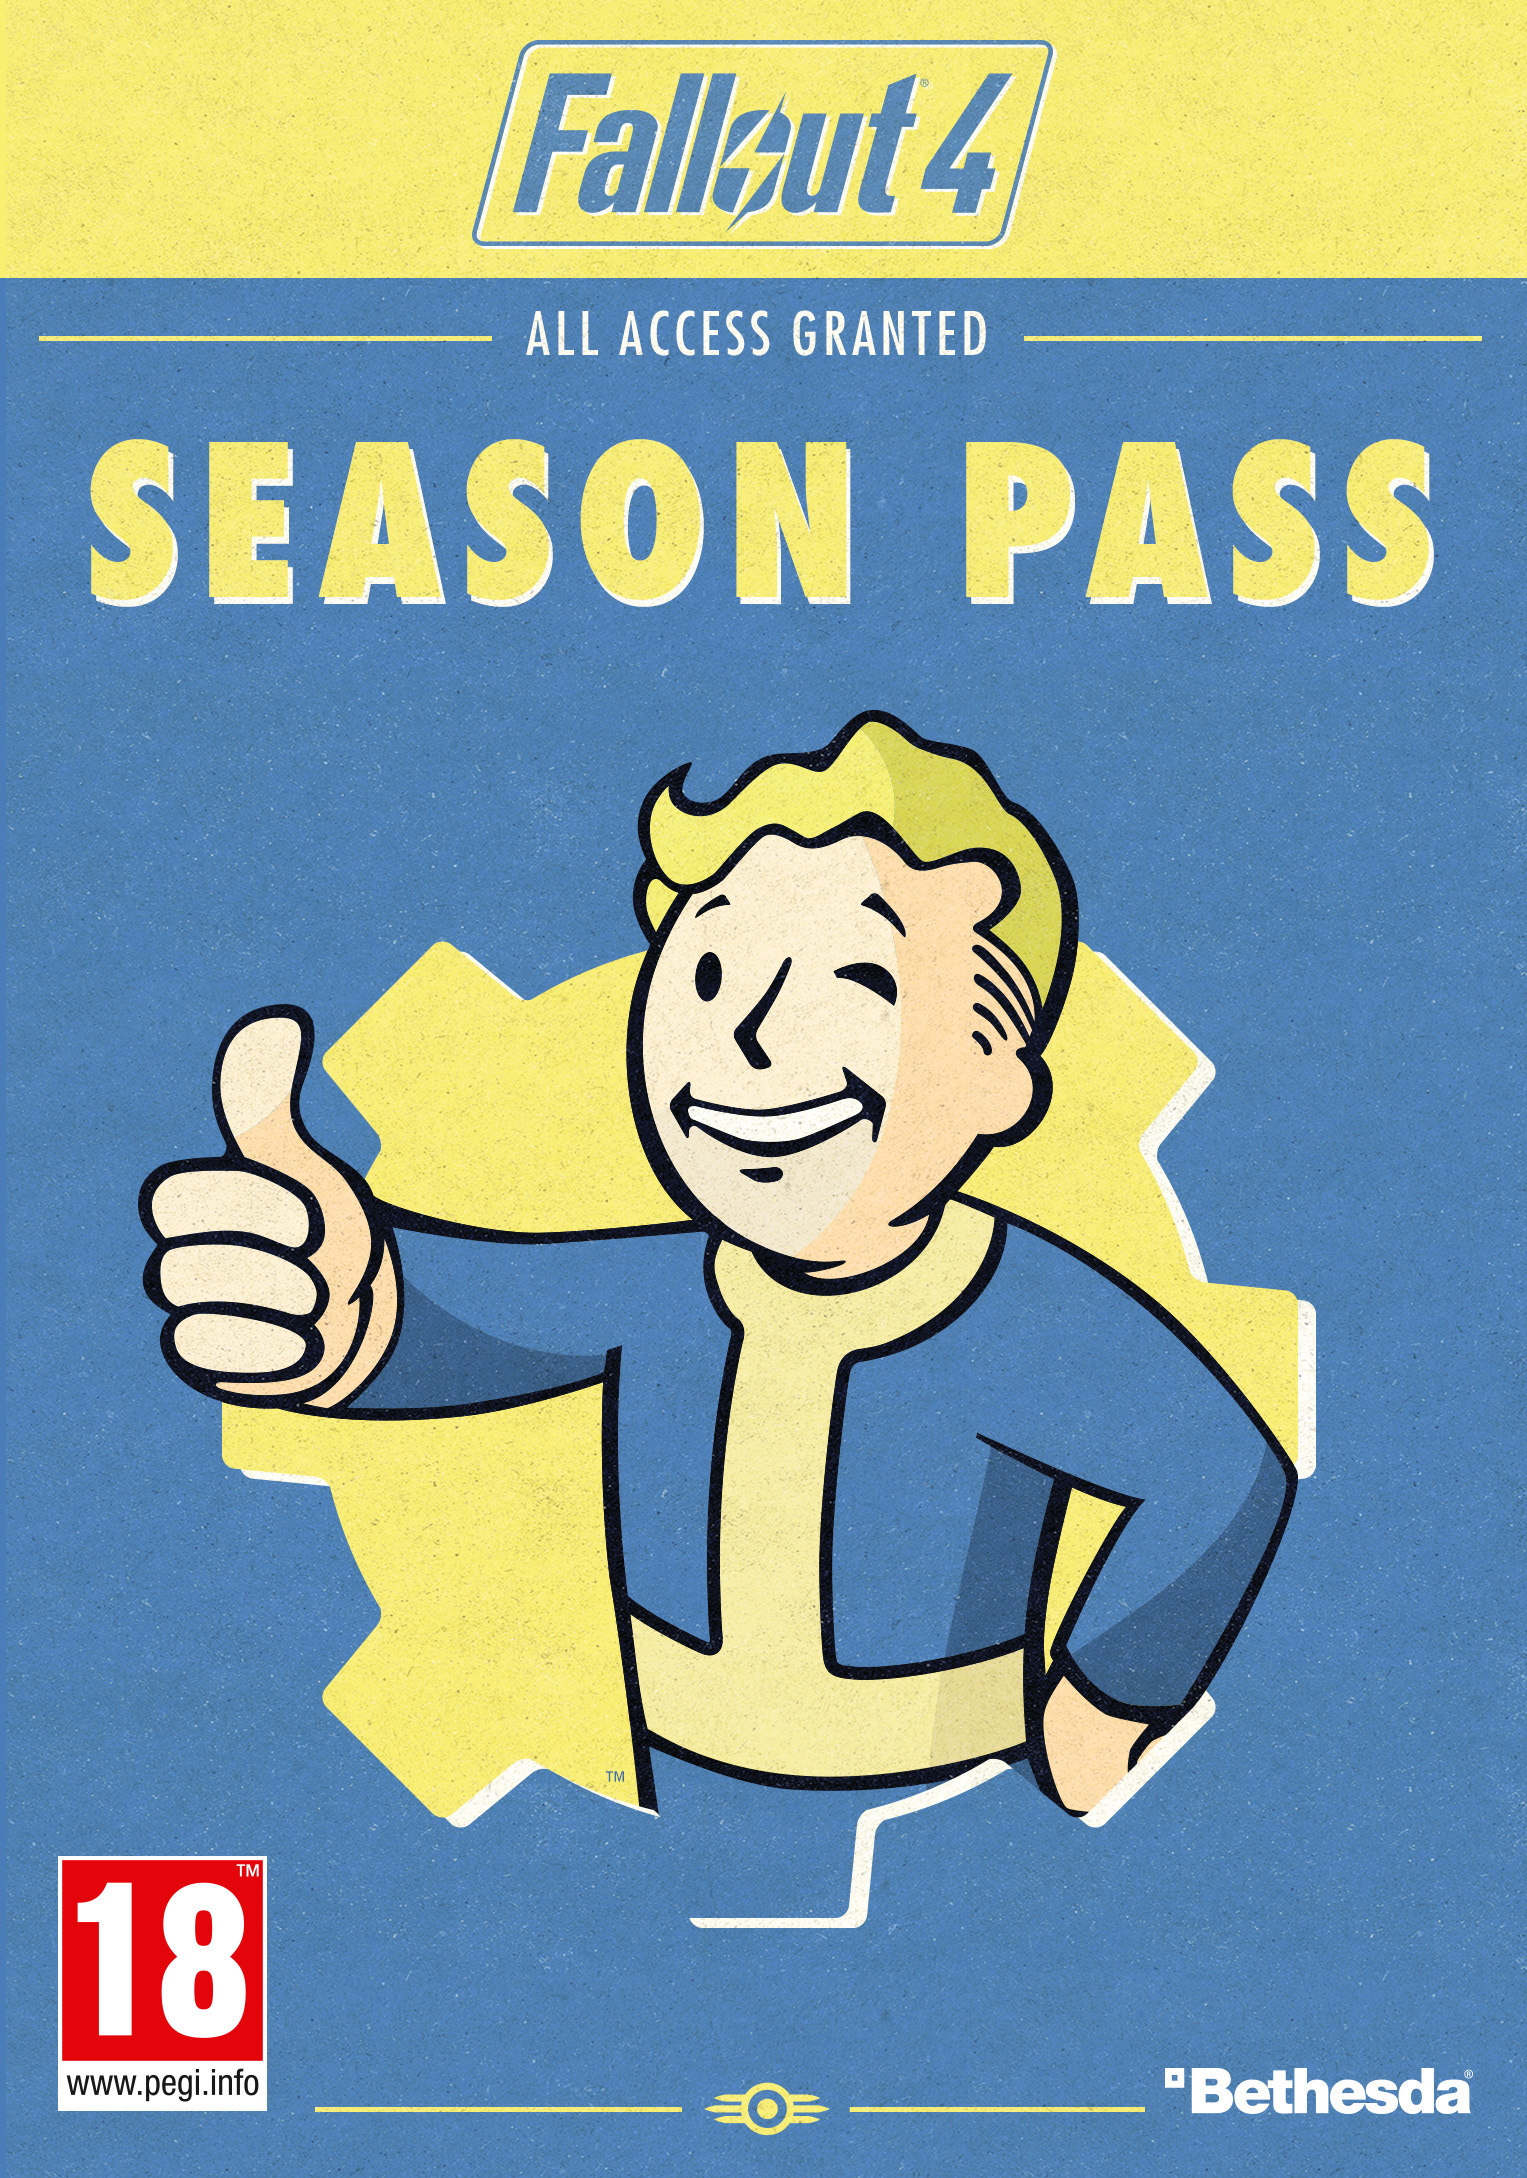 Fallout 4 add-ons | Fallout Wiki | FANDOM powered by Wikia